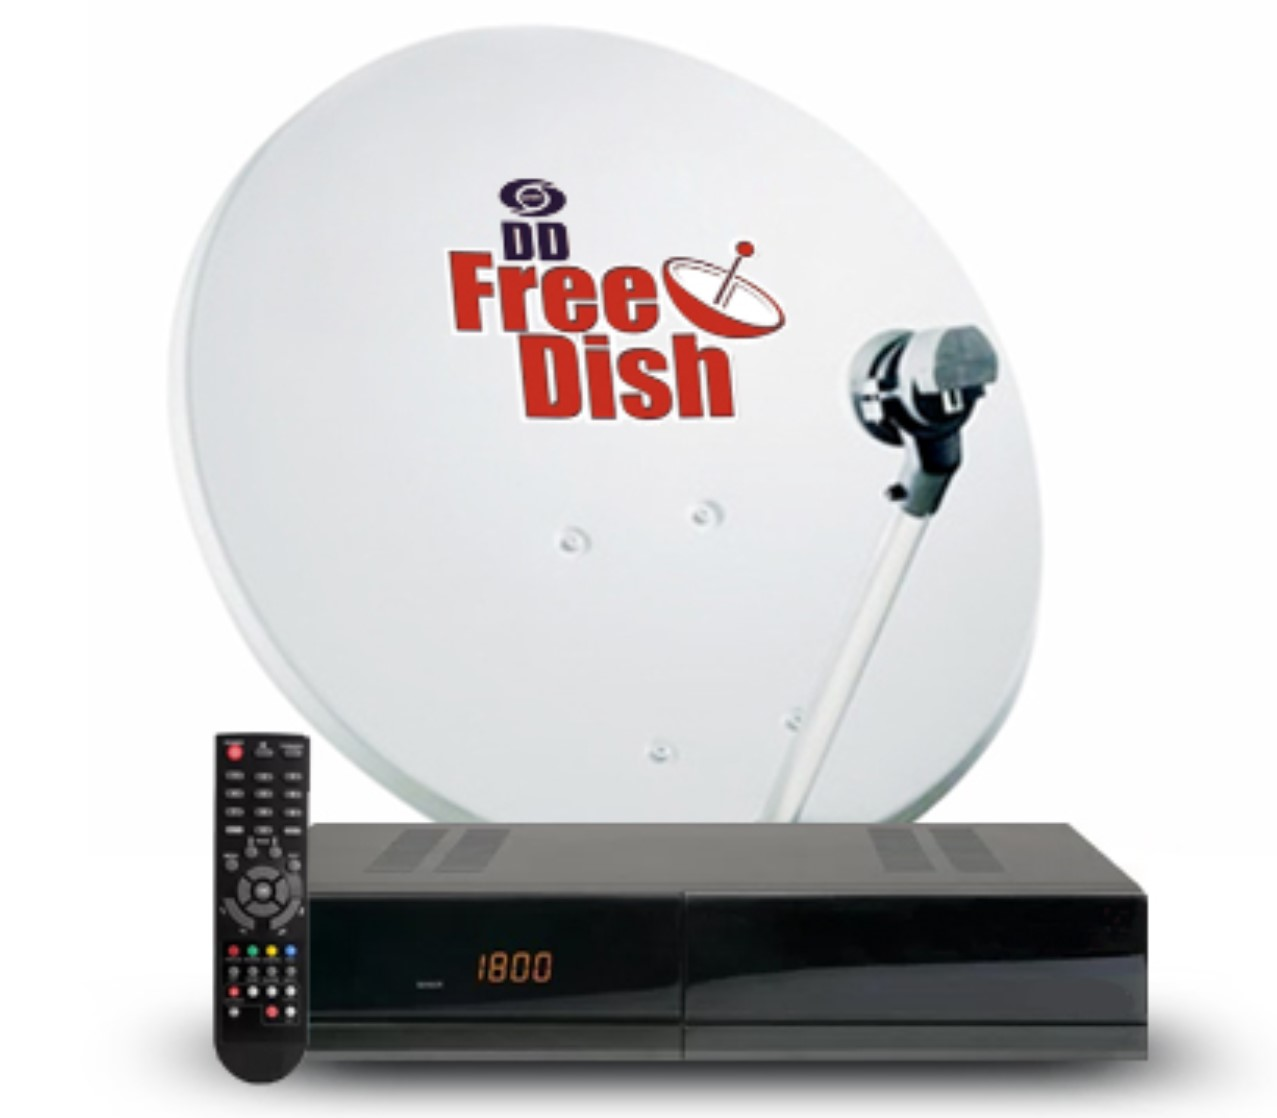 Star Utsav, Sony Pal, Zee Anmol, Rishtey back on DD Free Dish